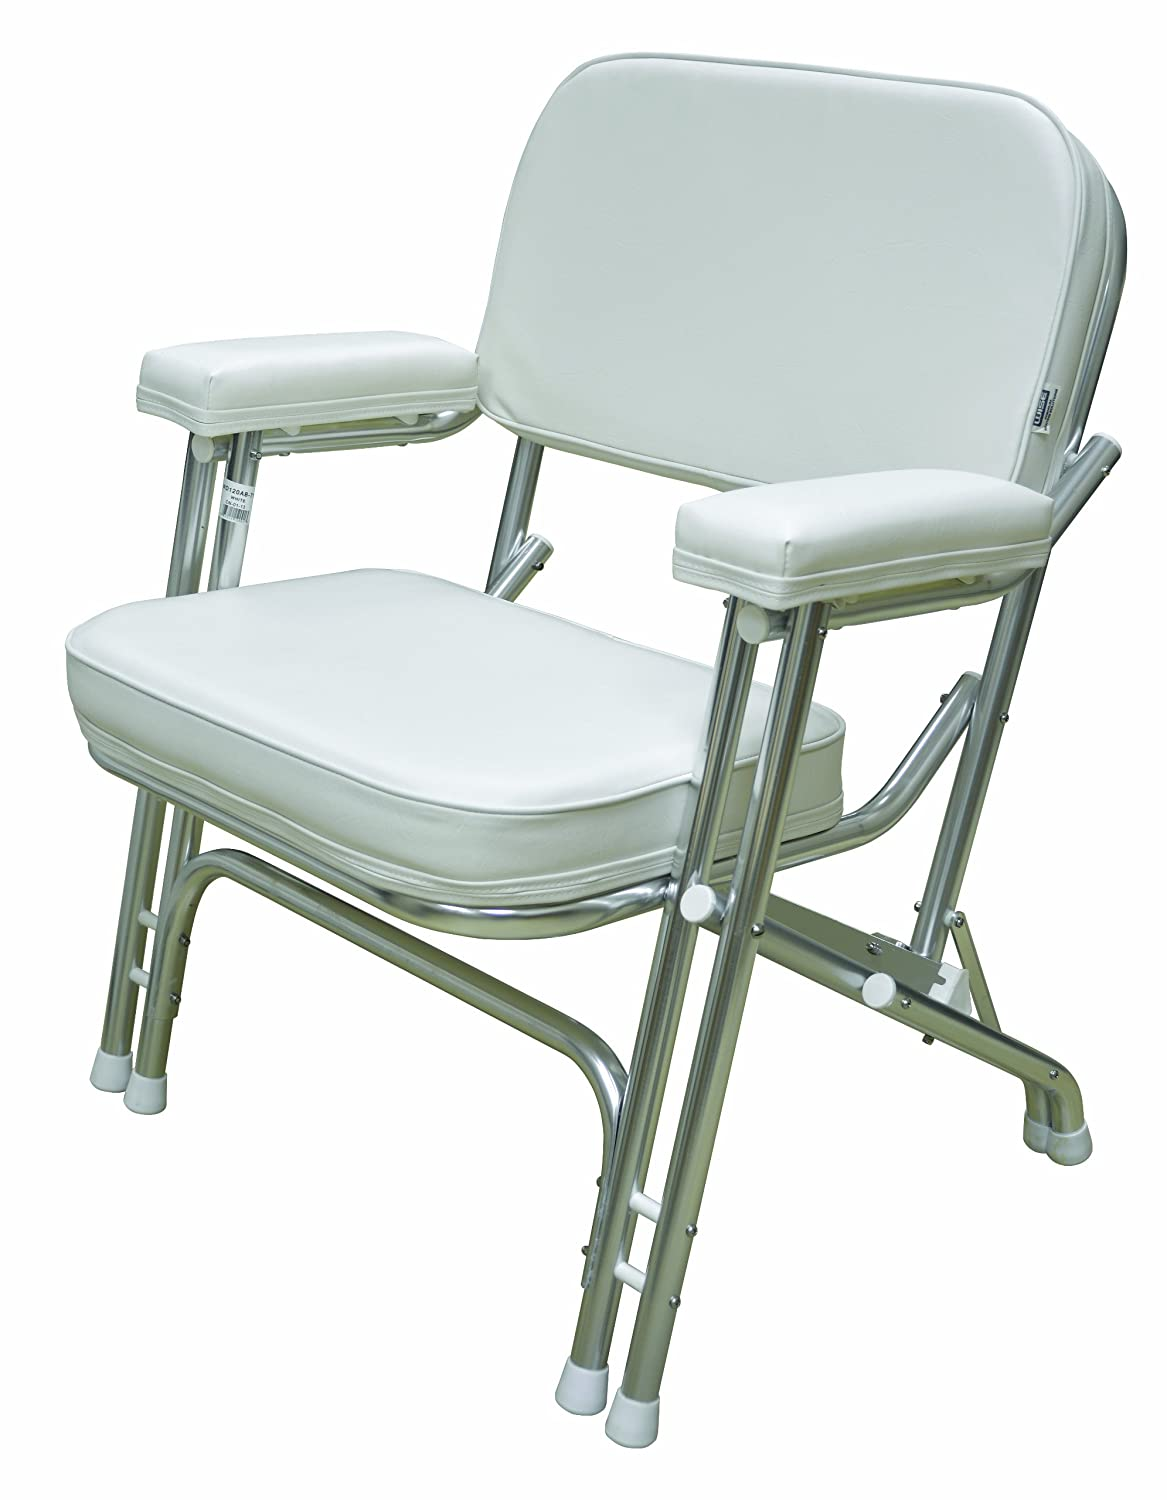 Heavy Duty Patio Chairs For Heavy People For Big And